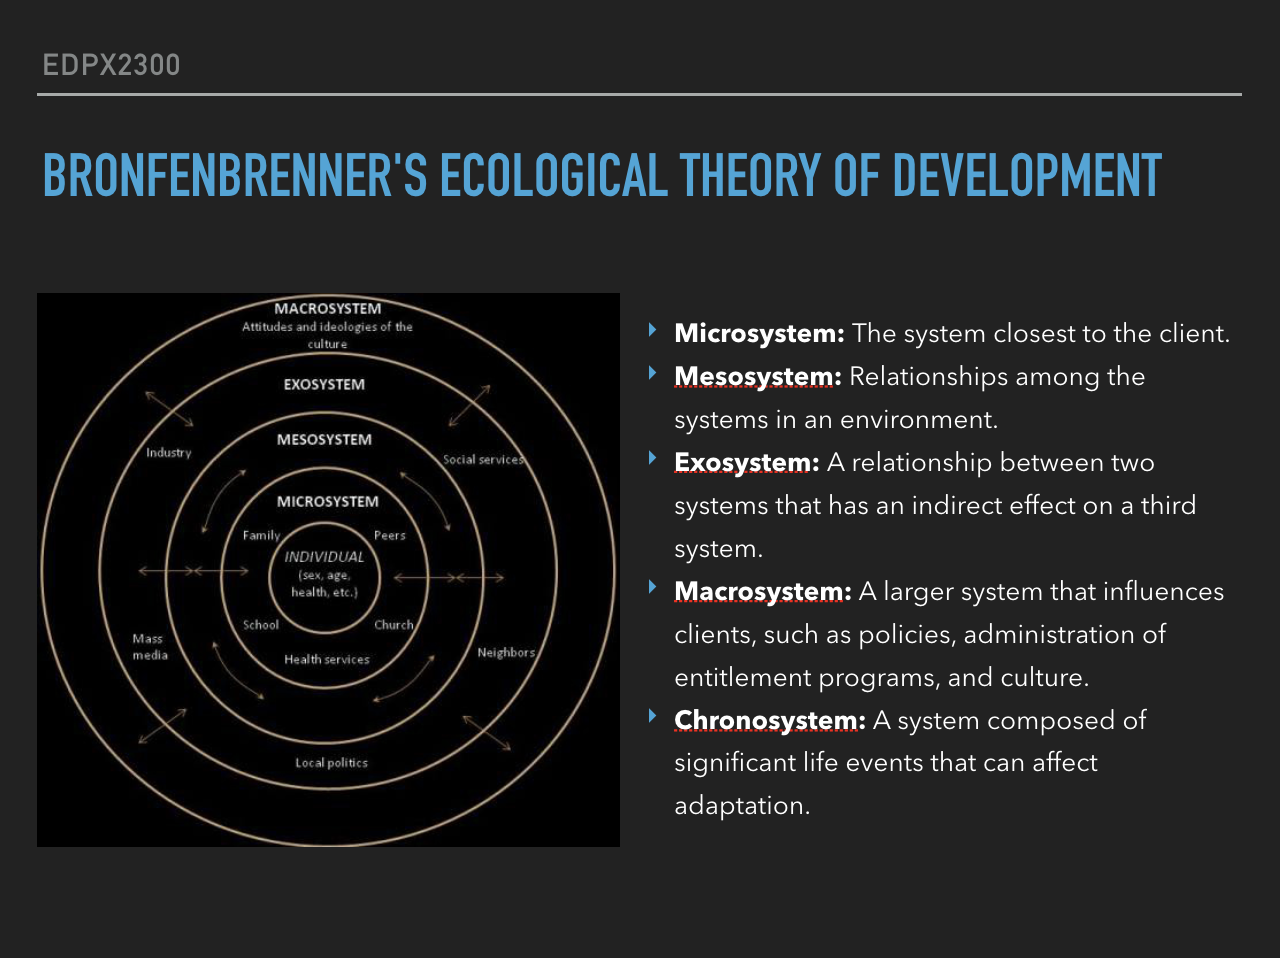 Bronfenbrenner's Ecological Theory of Development